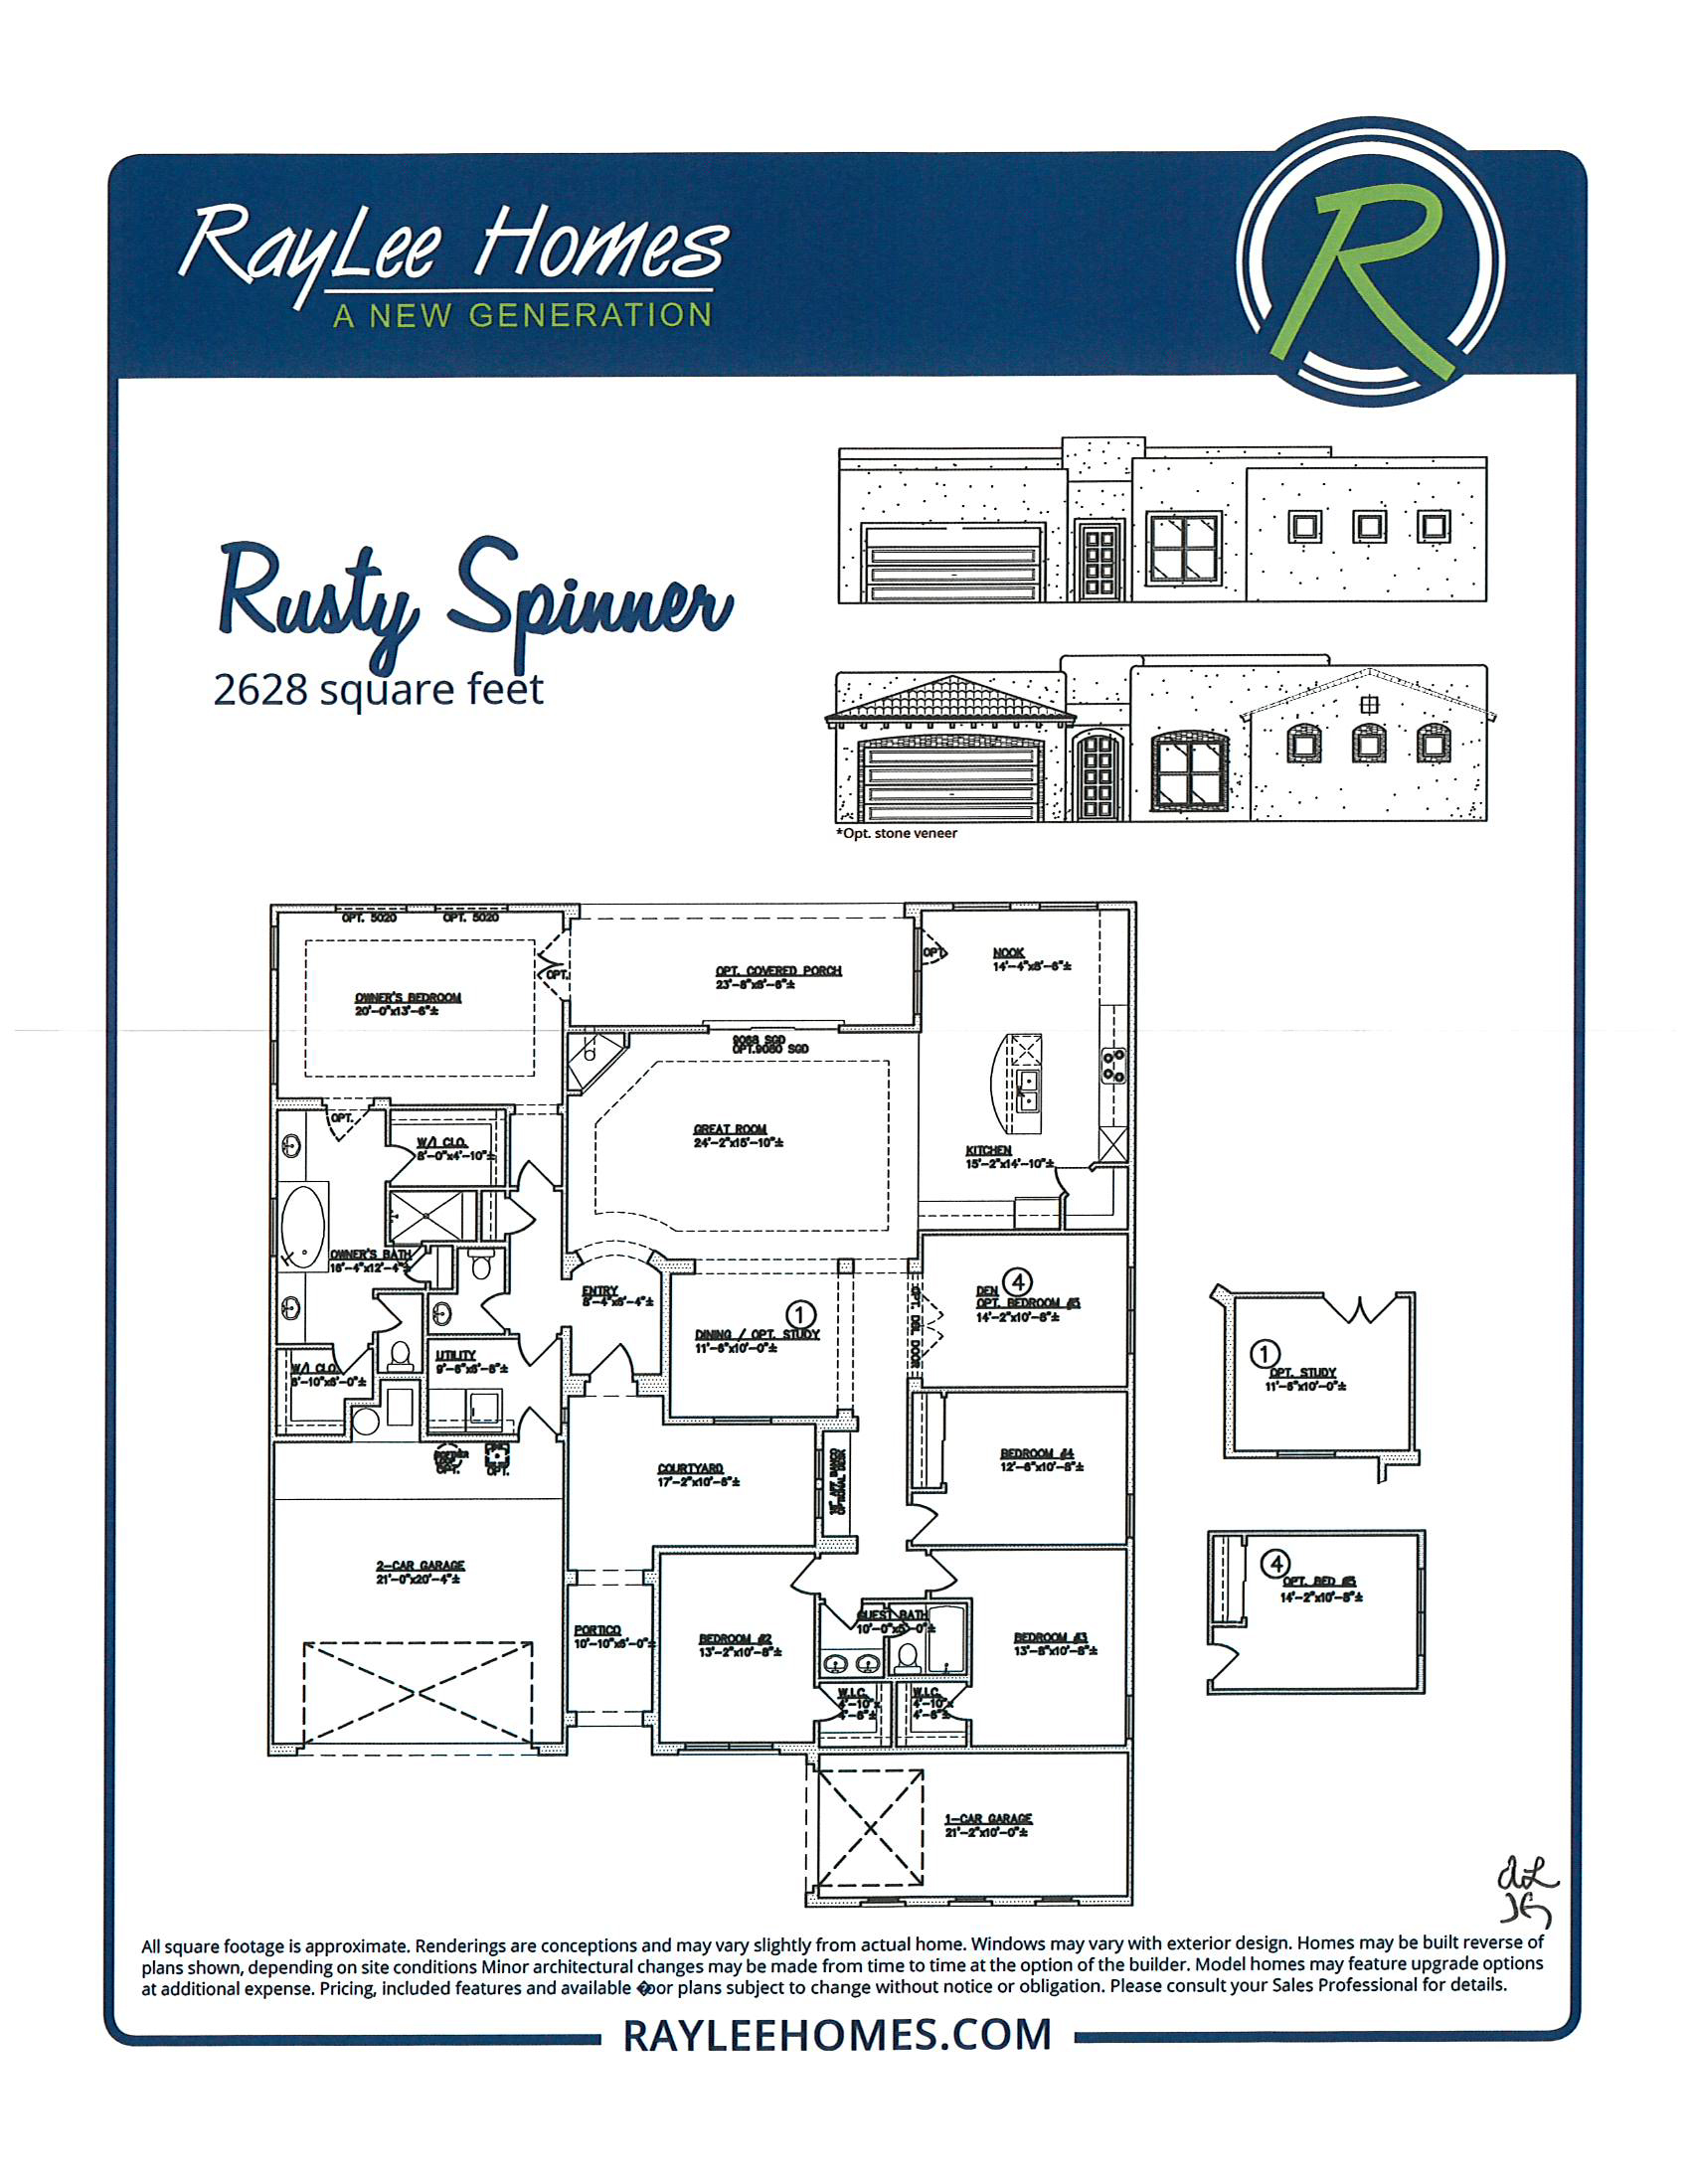 Rusty Spinner RayLee Floorplan